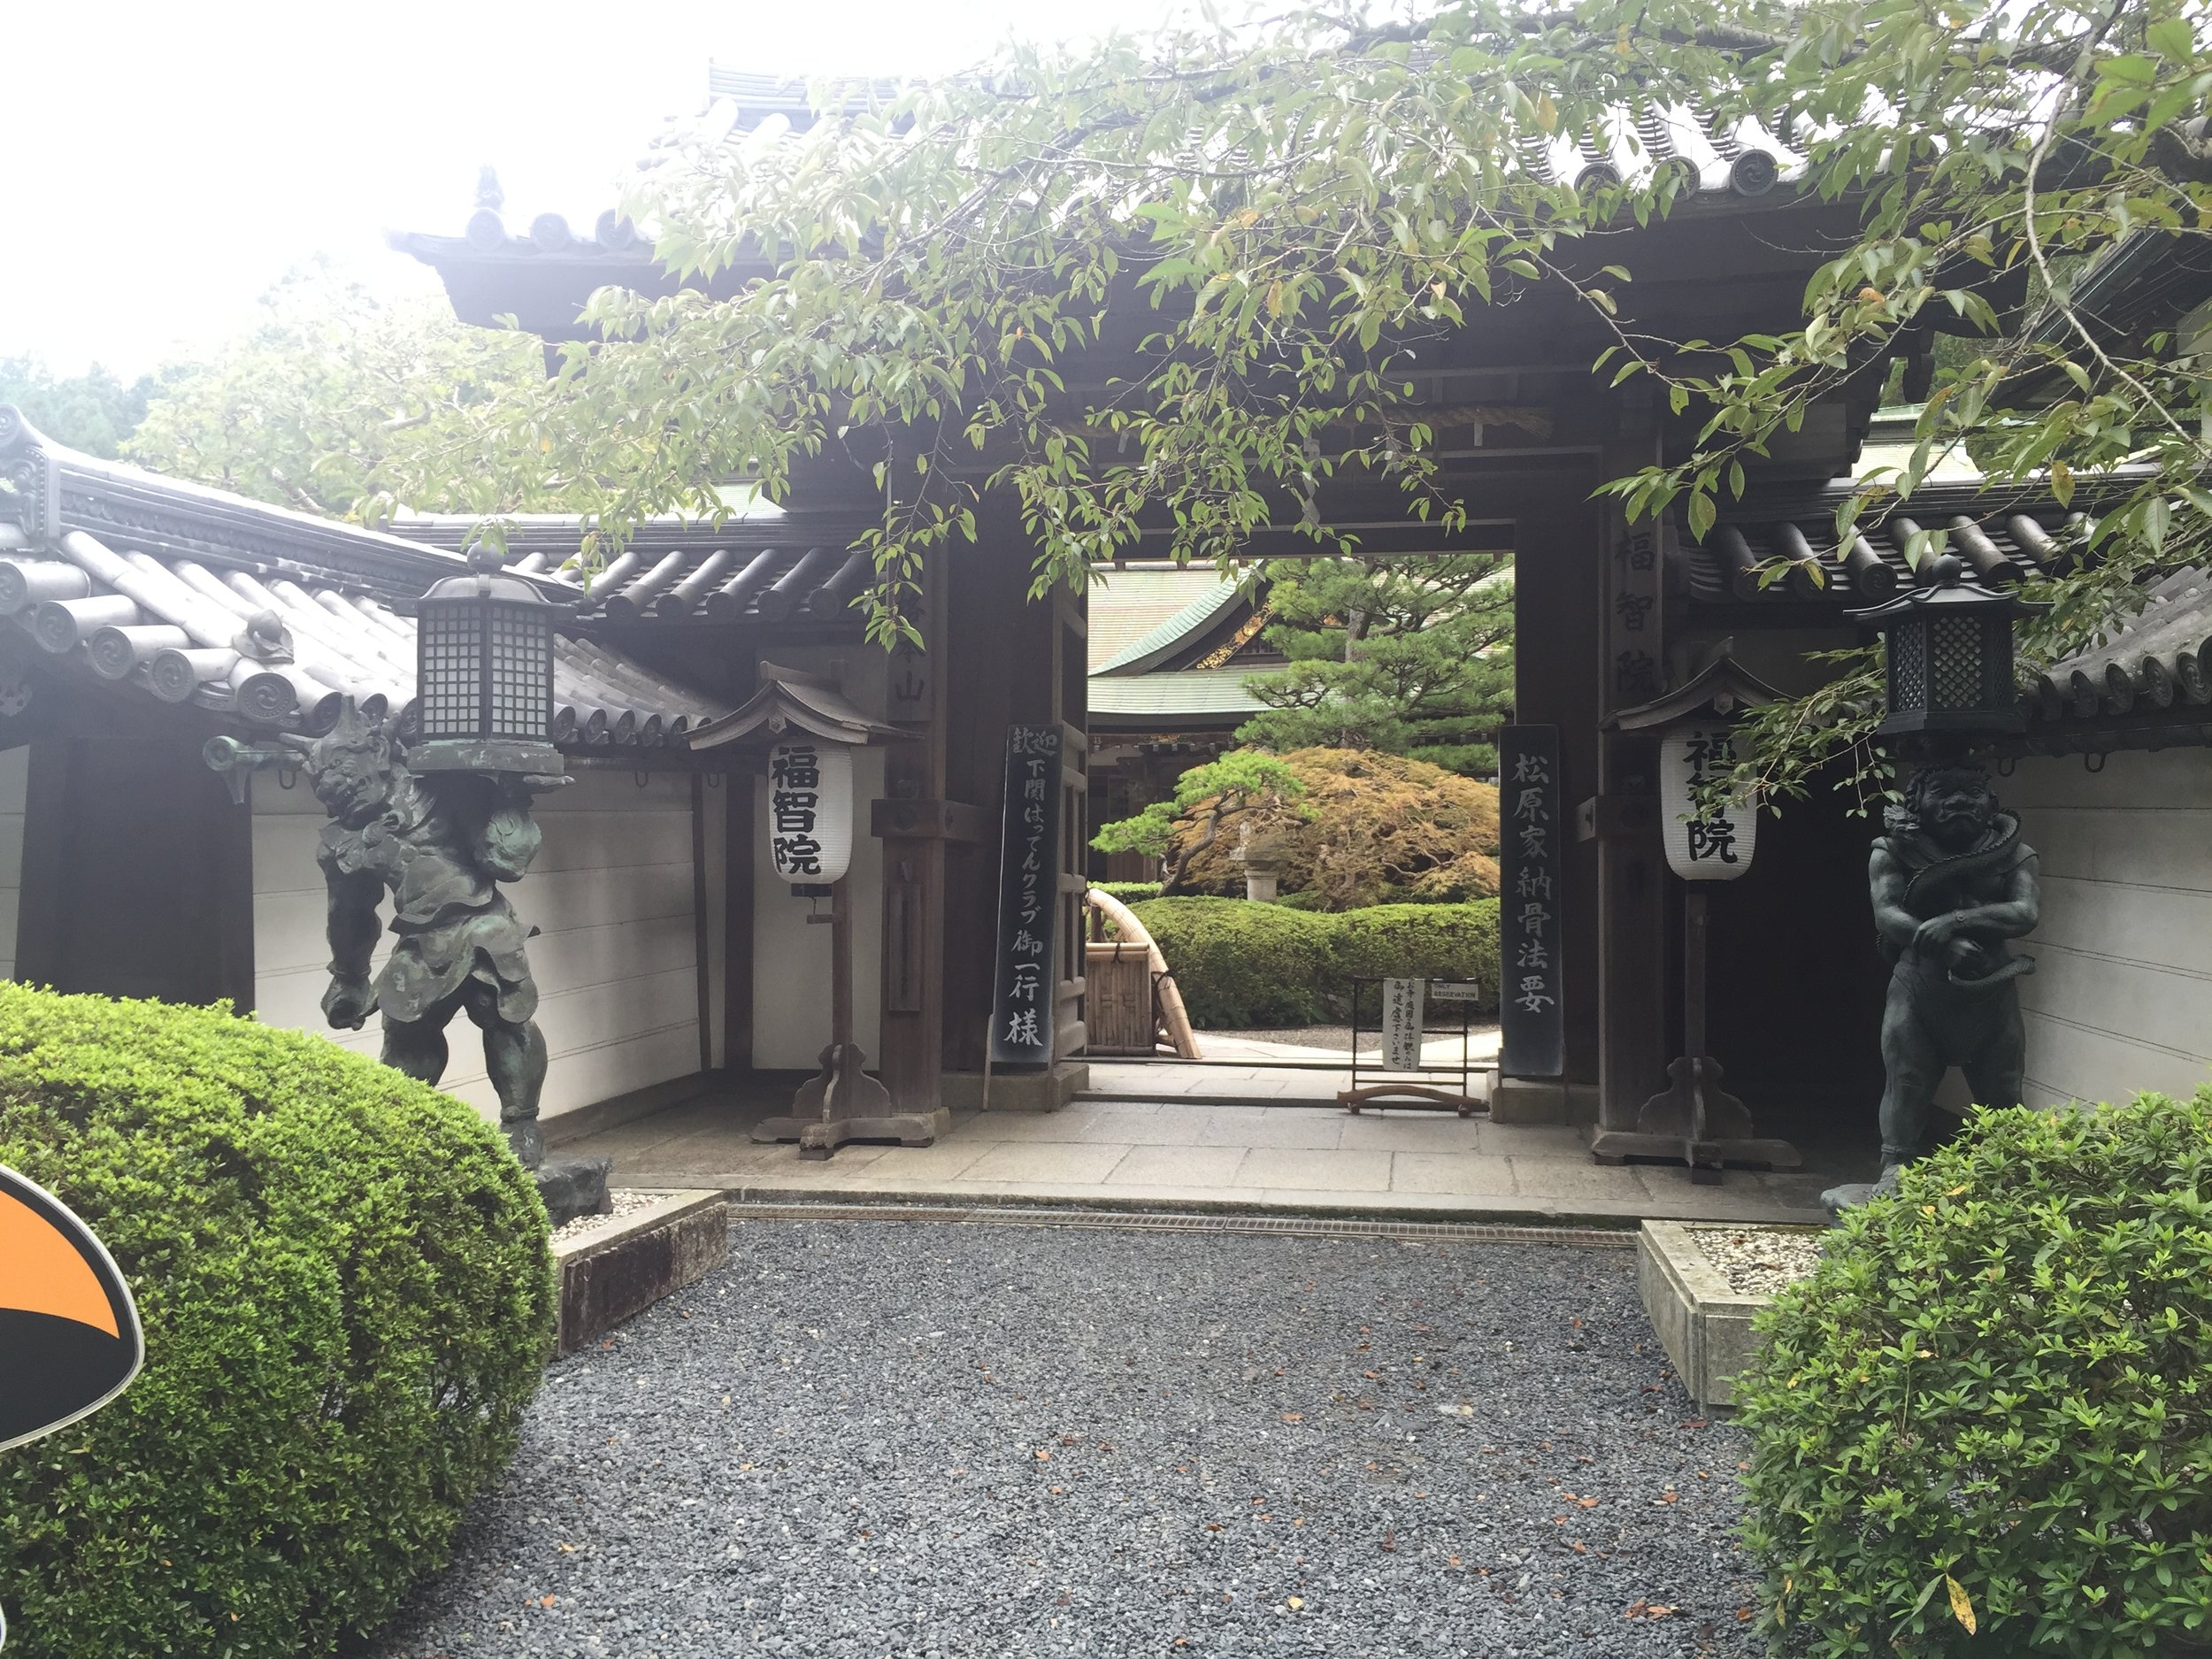 Koyasan guesthouse with vegan and vegetarian, plant-based restaurant